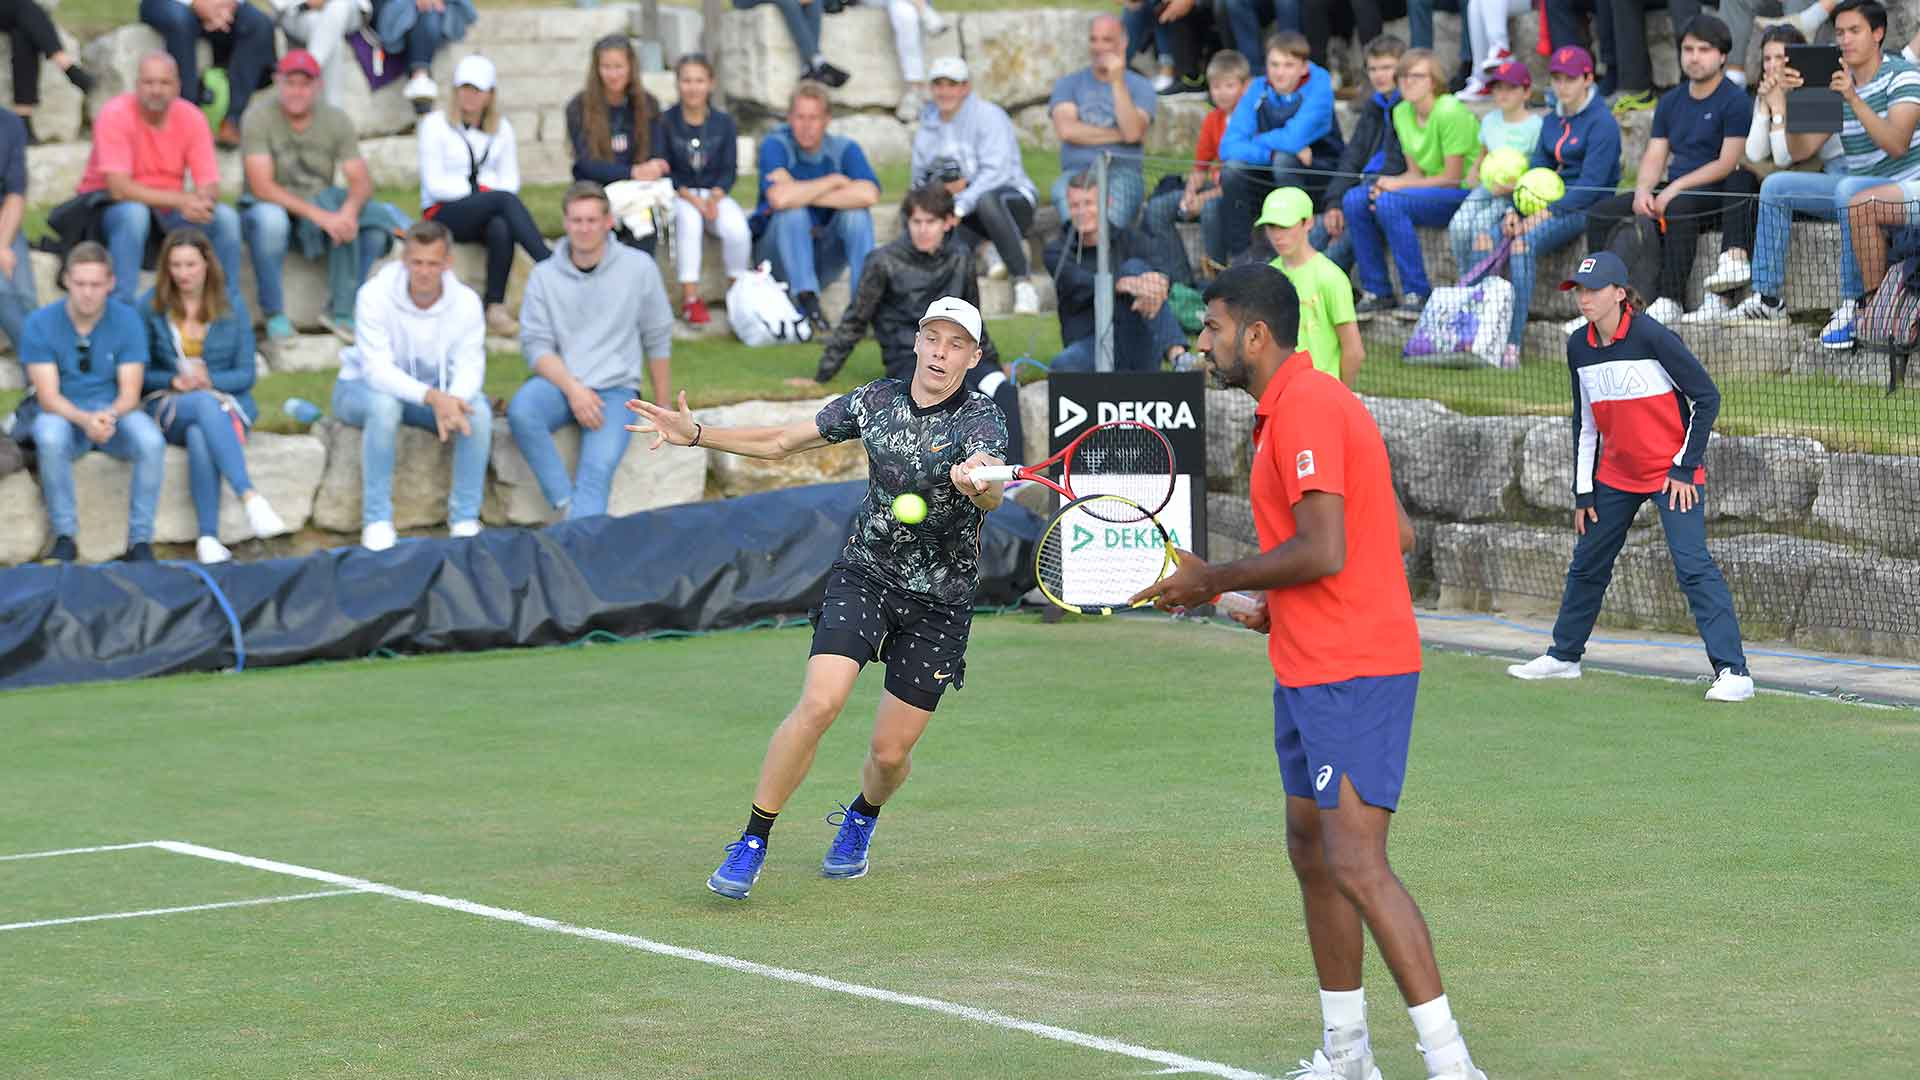 Denis Shapovalov and Rohan Bopanna reach the MercedesCup quarter-finals on Wednesday in Stuttgart